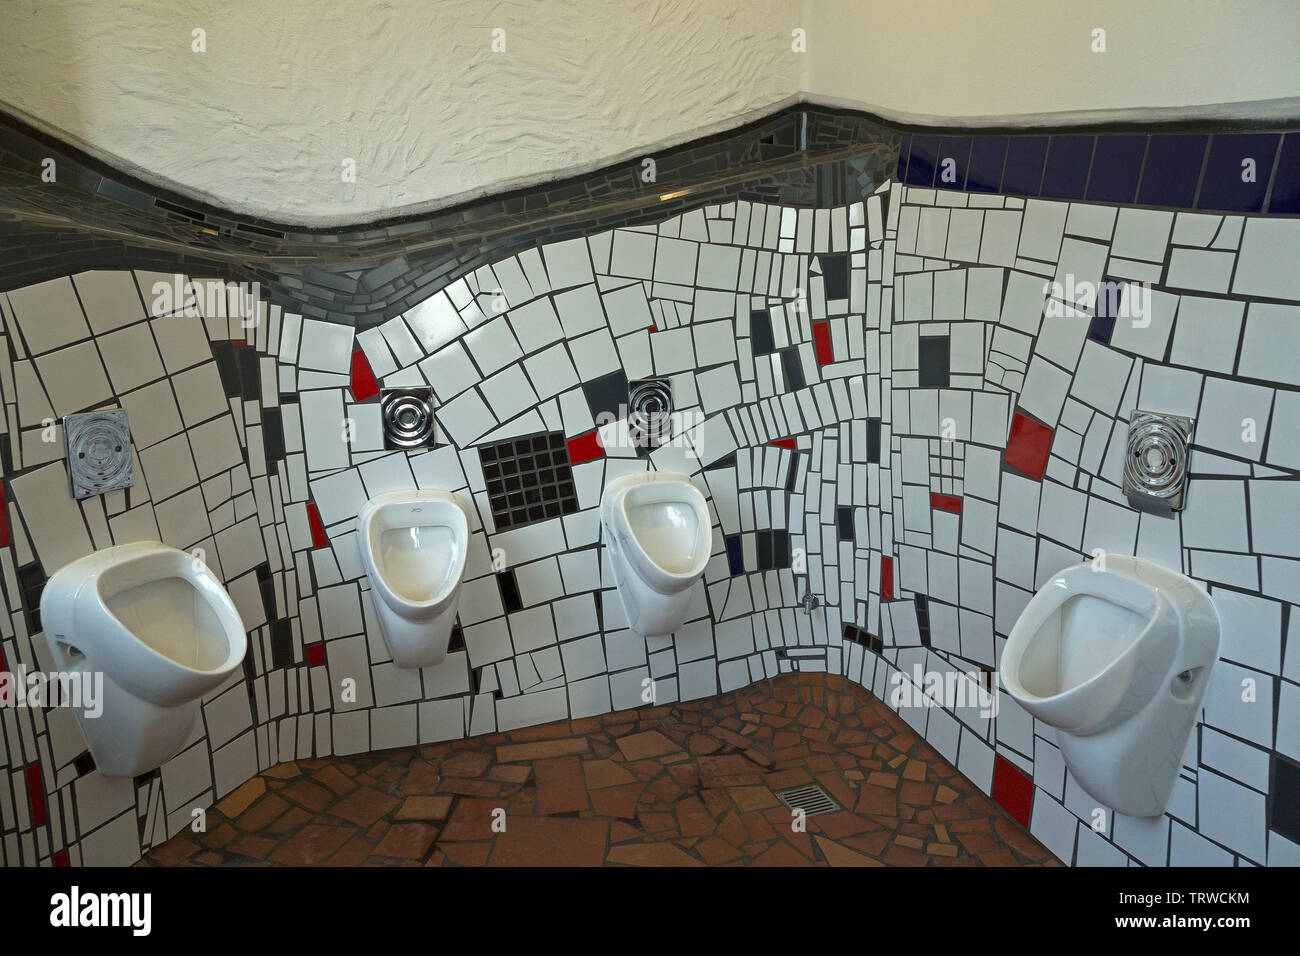 toilet, Hunderwasser Station, Uelzen, Lower Saxony, Germany - Stock Image